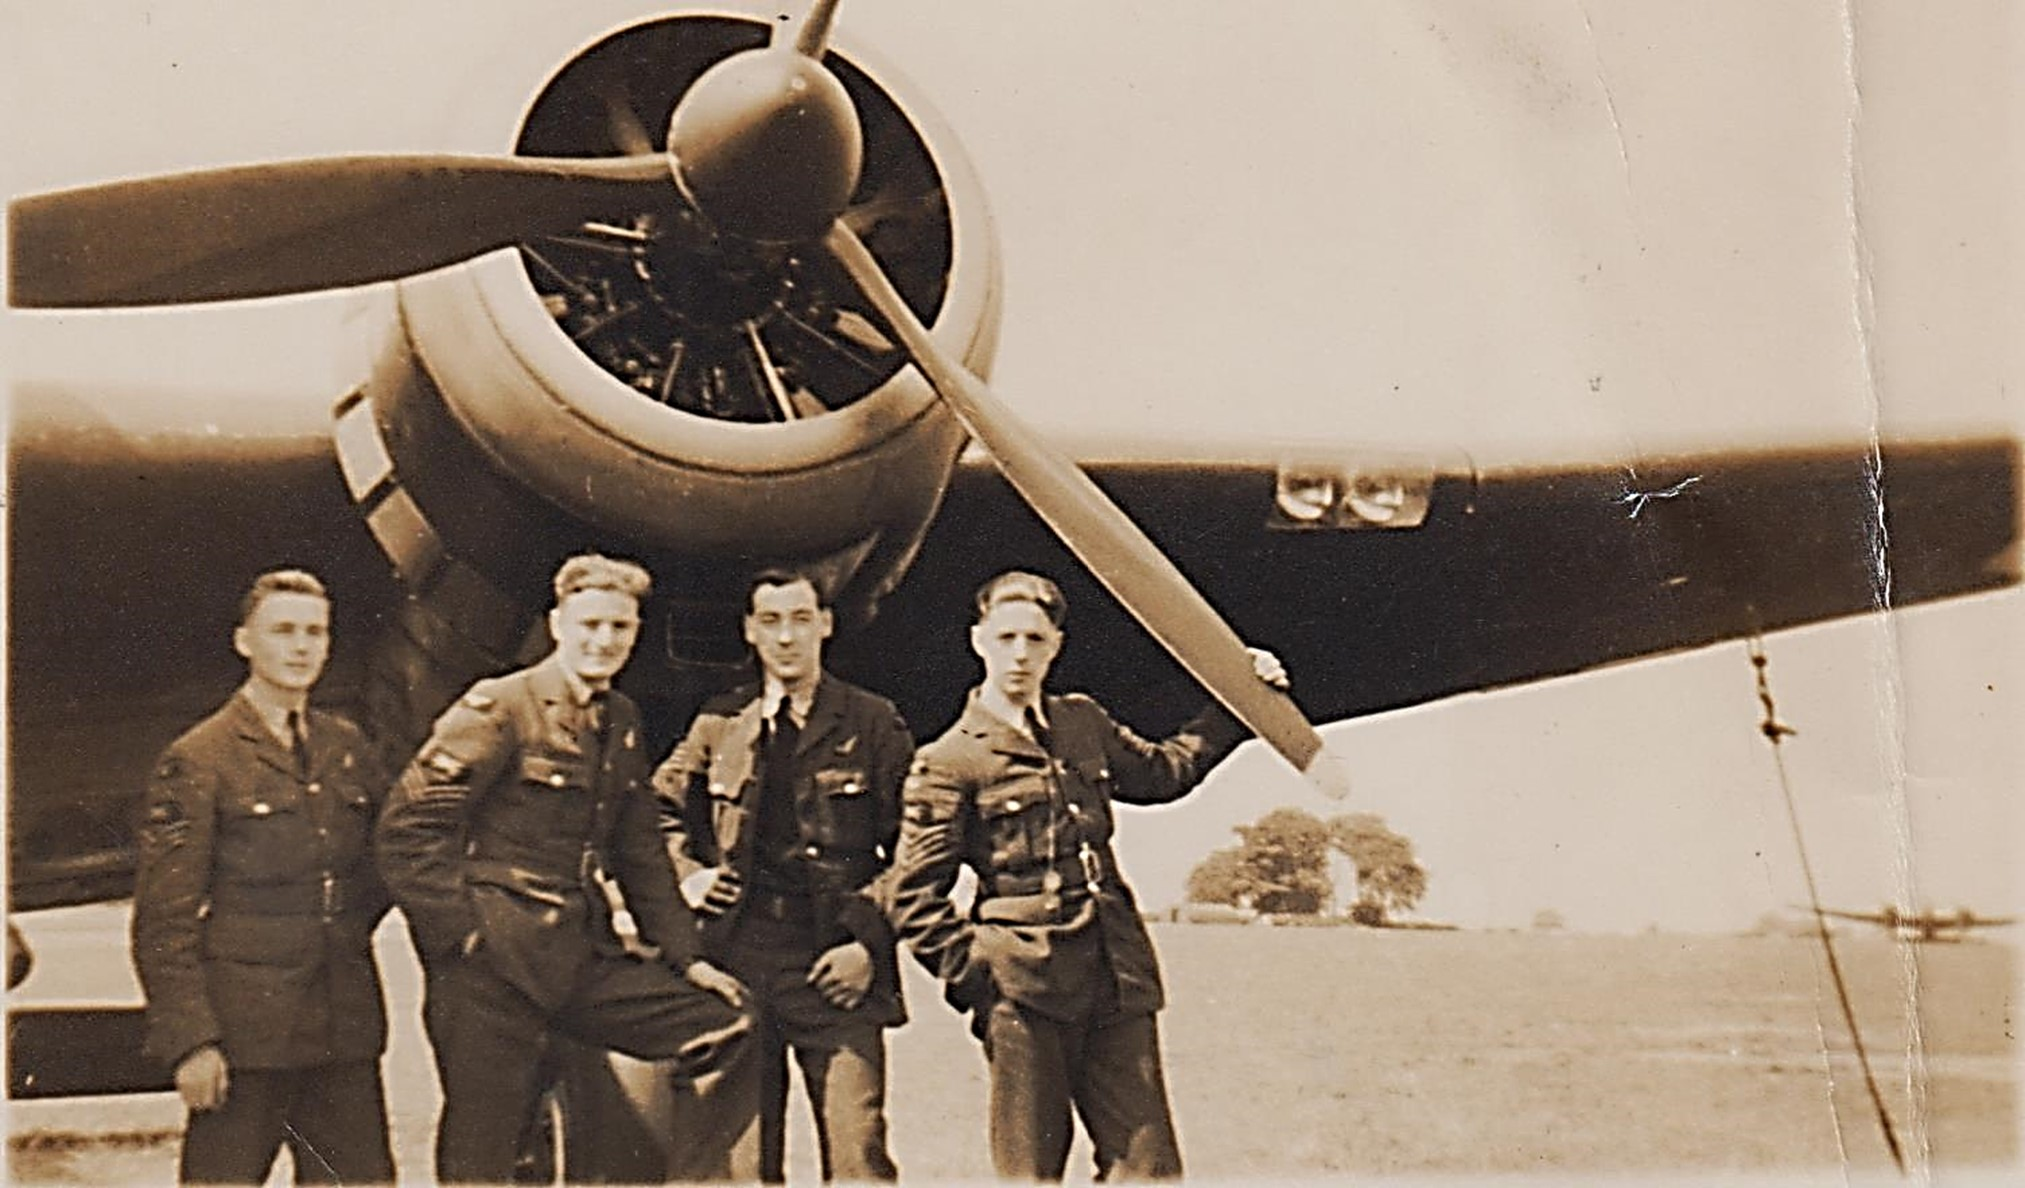 phil_and_crew_in_front_of_plane_2_001.jpg